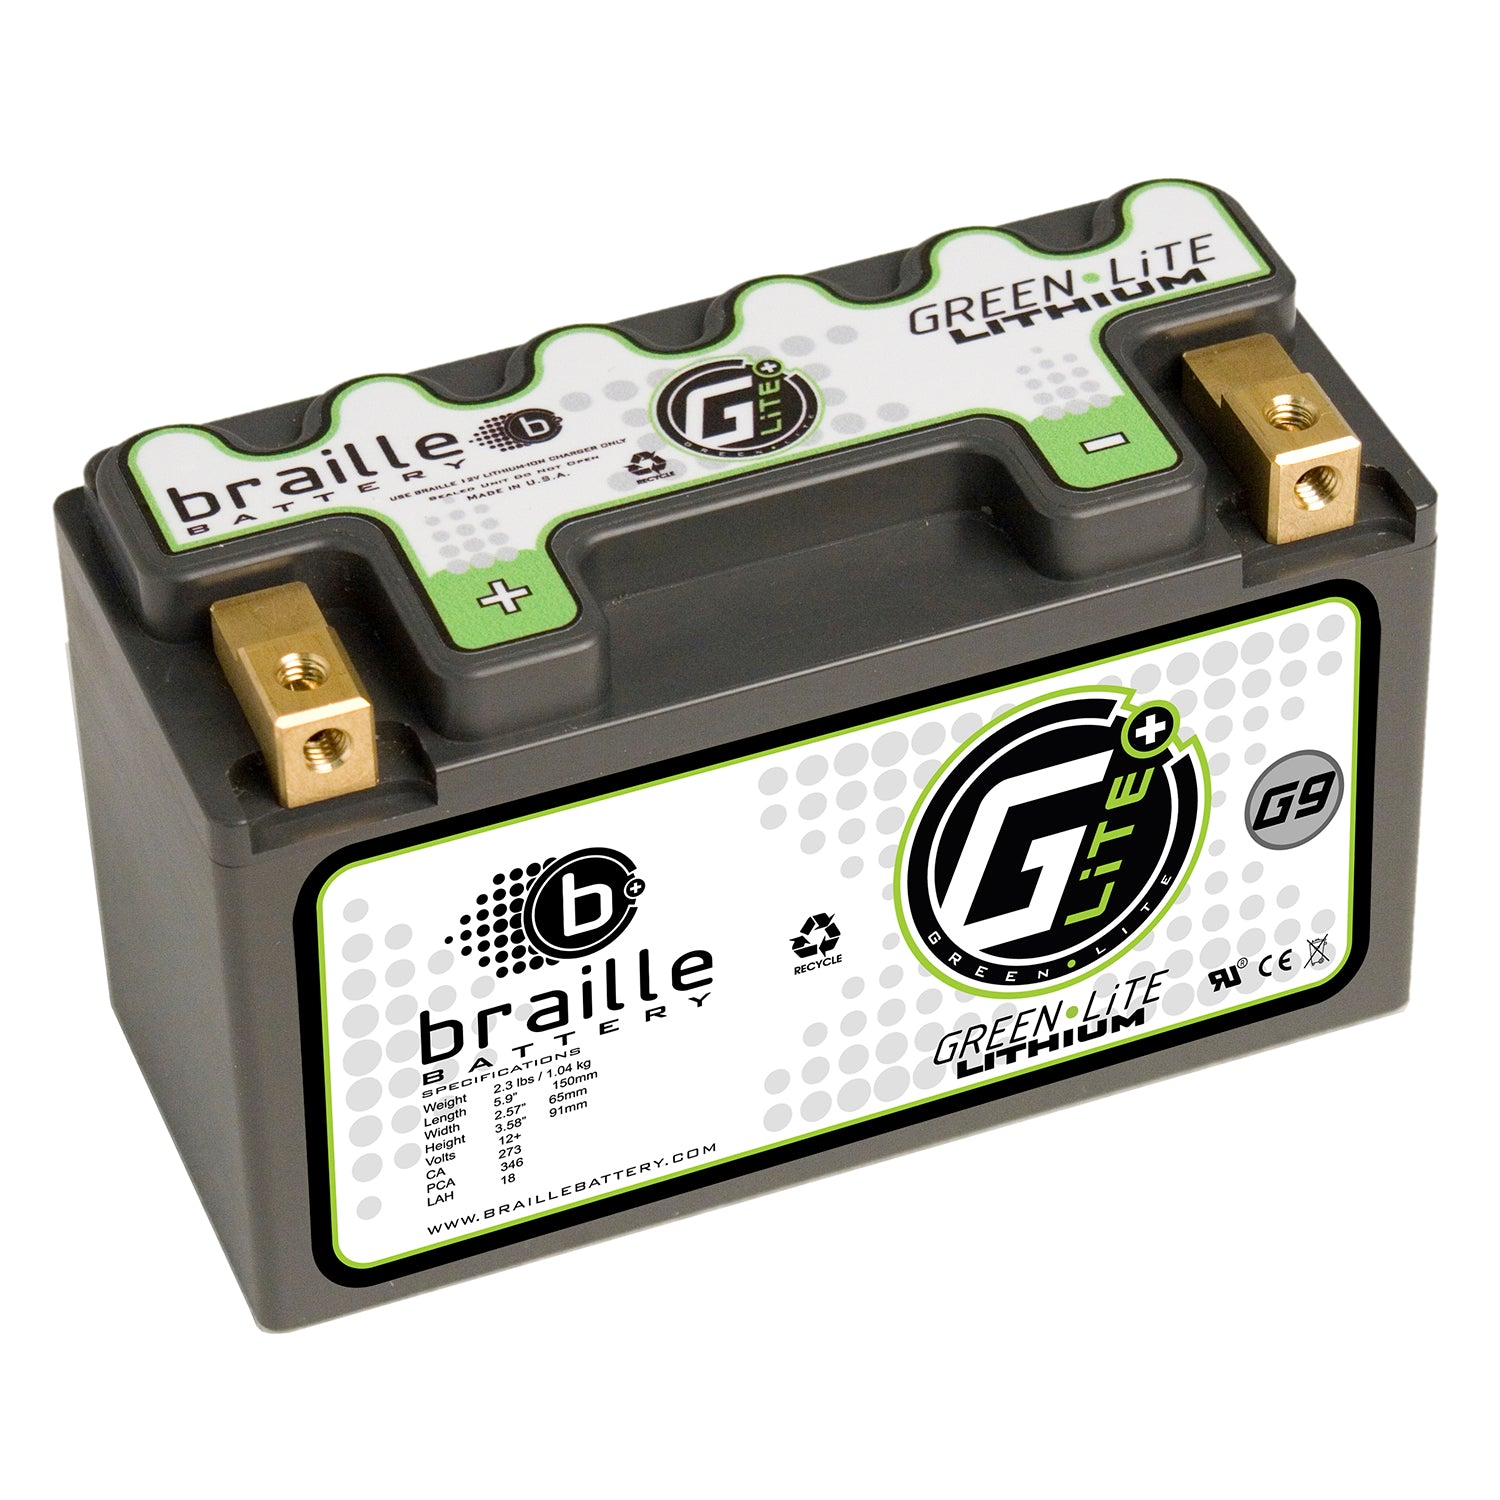 G9L - GreenLite lithium battery